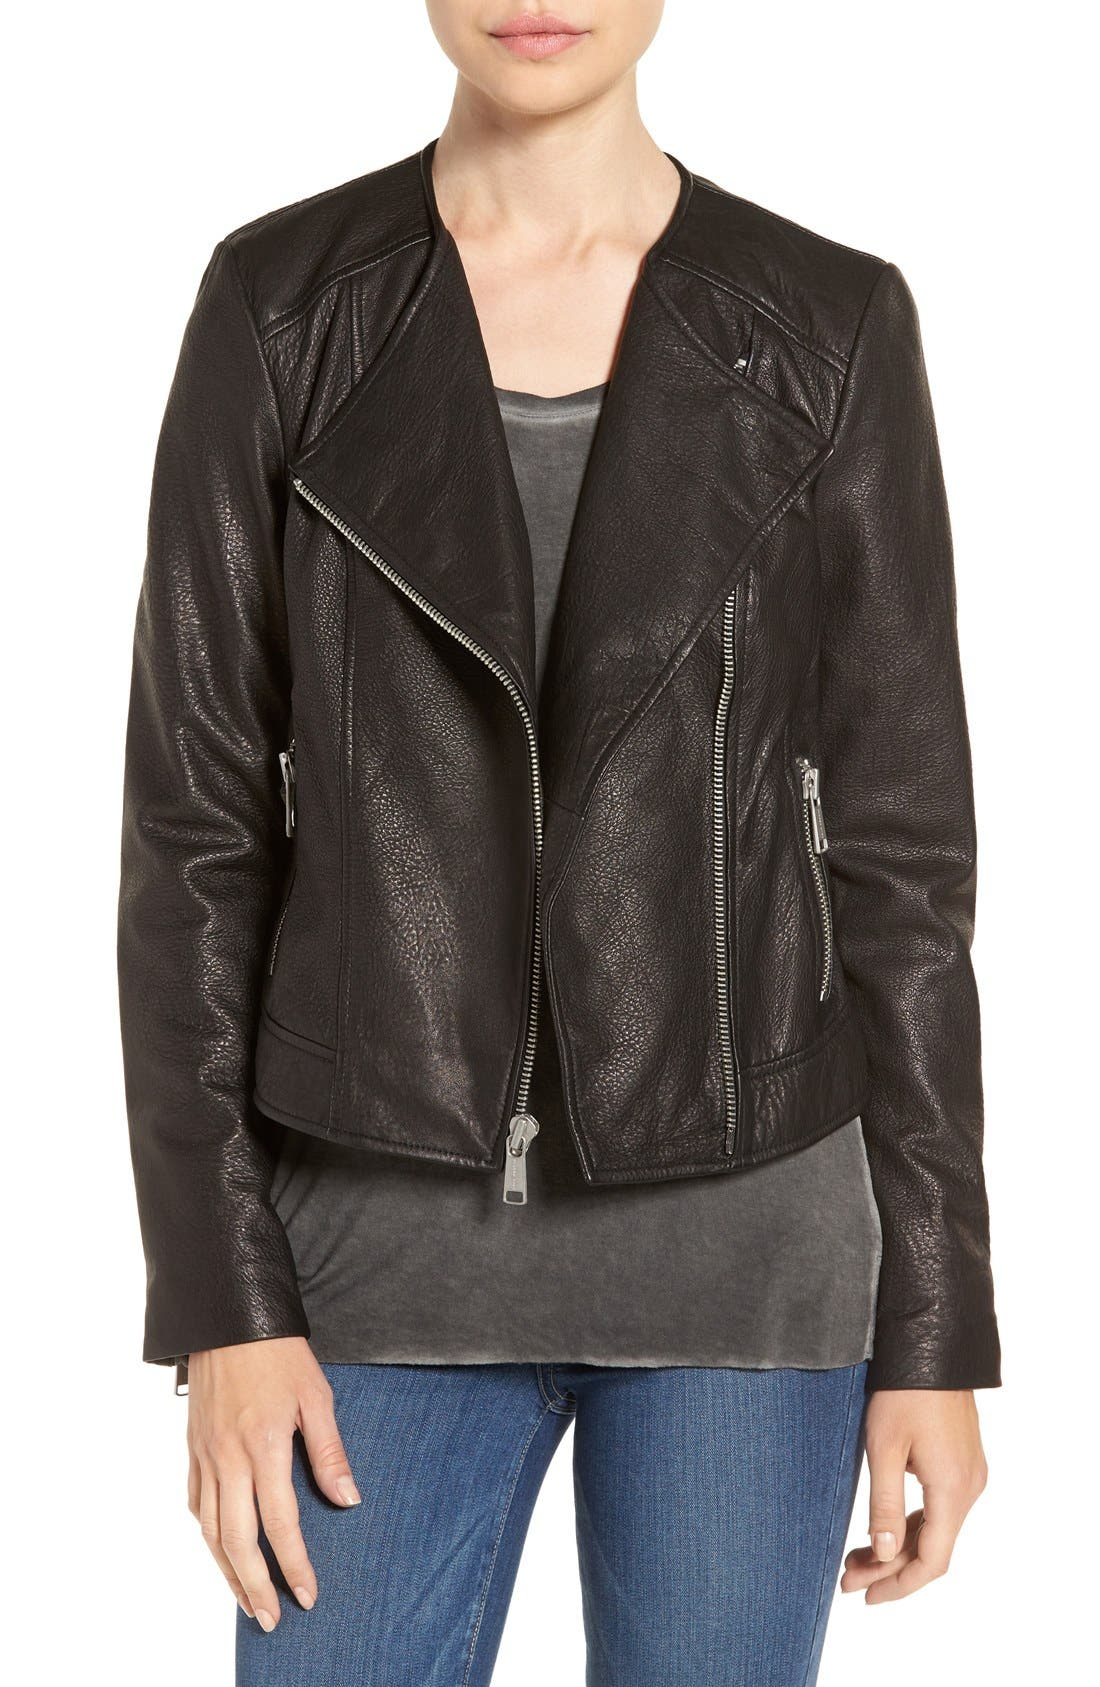 Alternate Image 1 Selected - Andrew Marc 'Riley' Textured Leather Moto Jacket